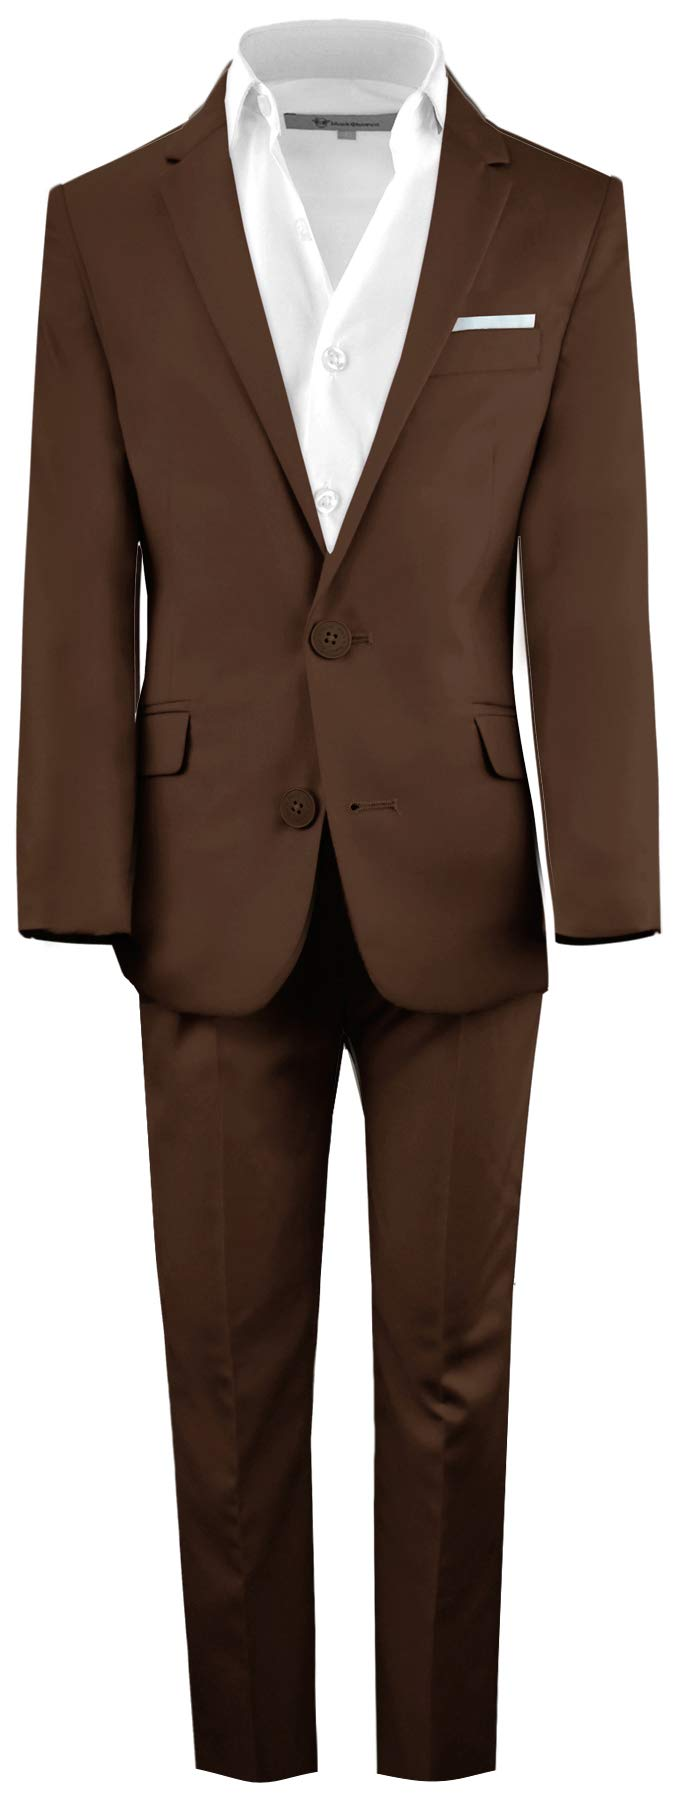 Black n Bianco Boys' First Class Slim Fit Suits Lightweight Style. Presented by Baby Muffin (10, Coco Brown)